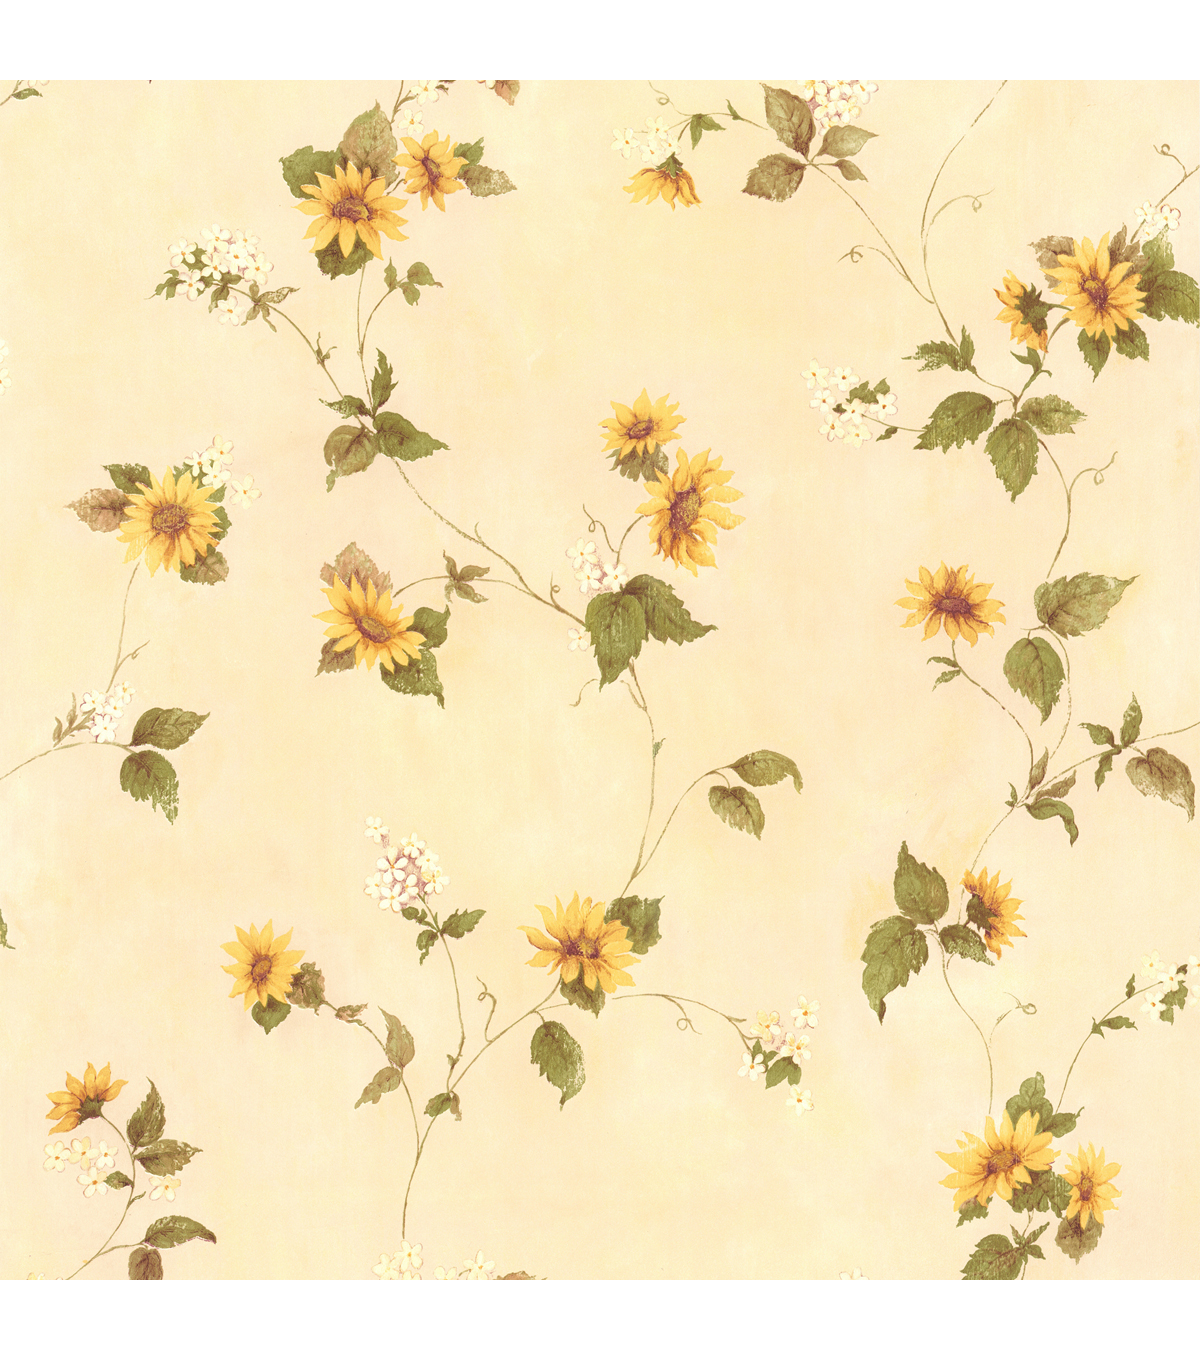 August Yellow Floral Trail Wallpaper Sample